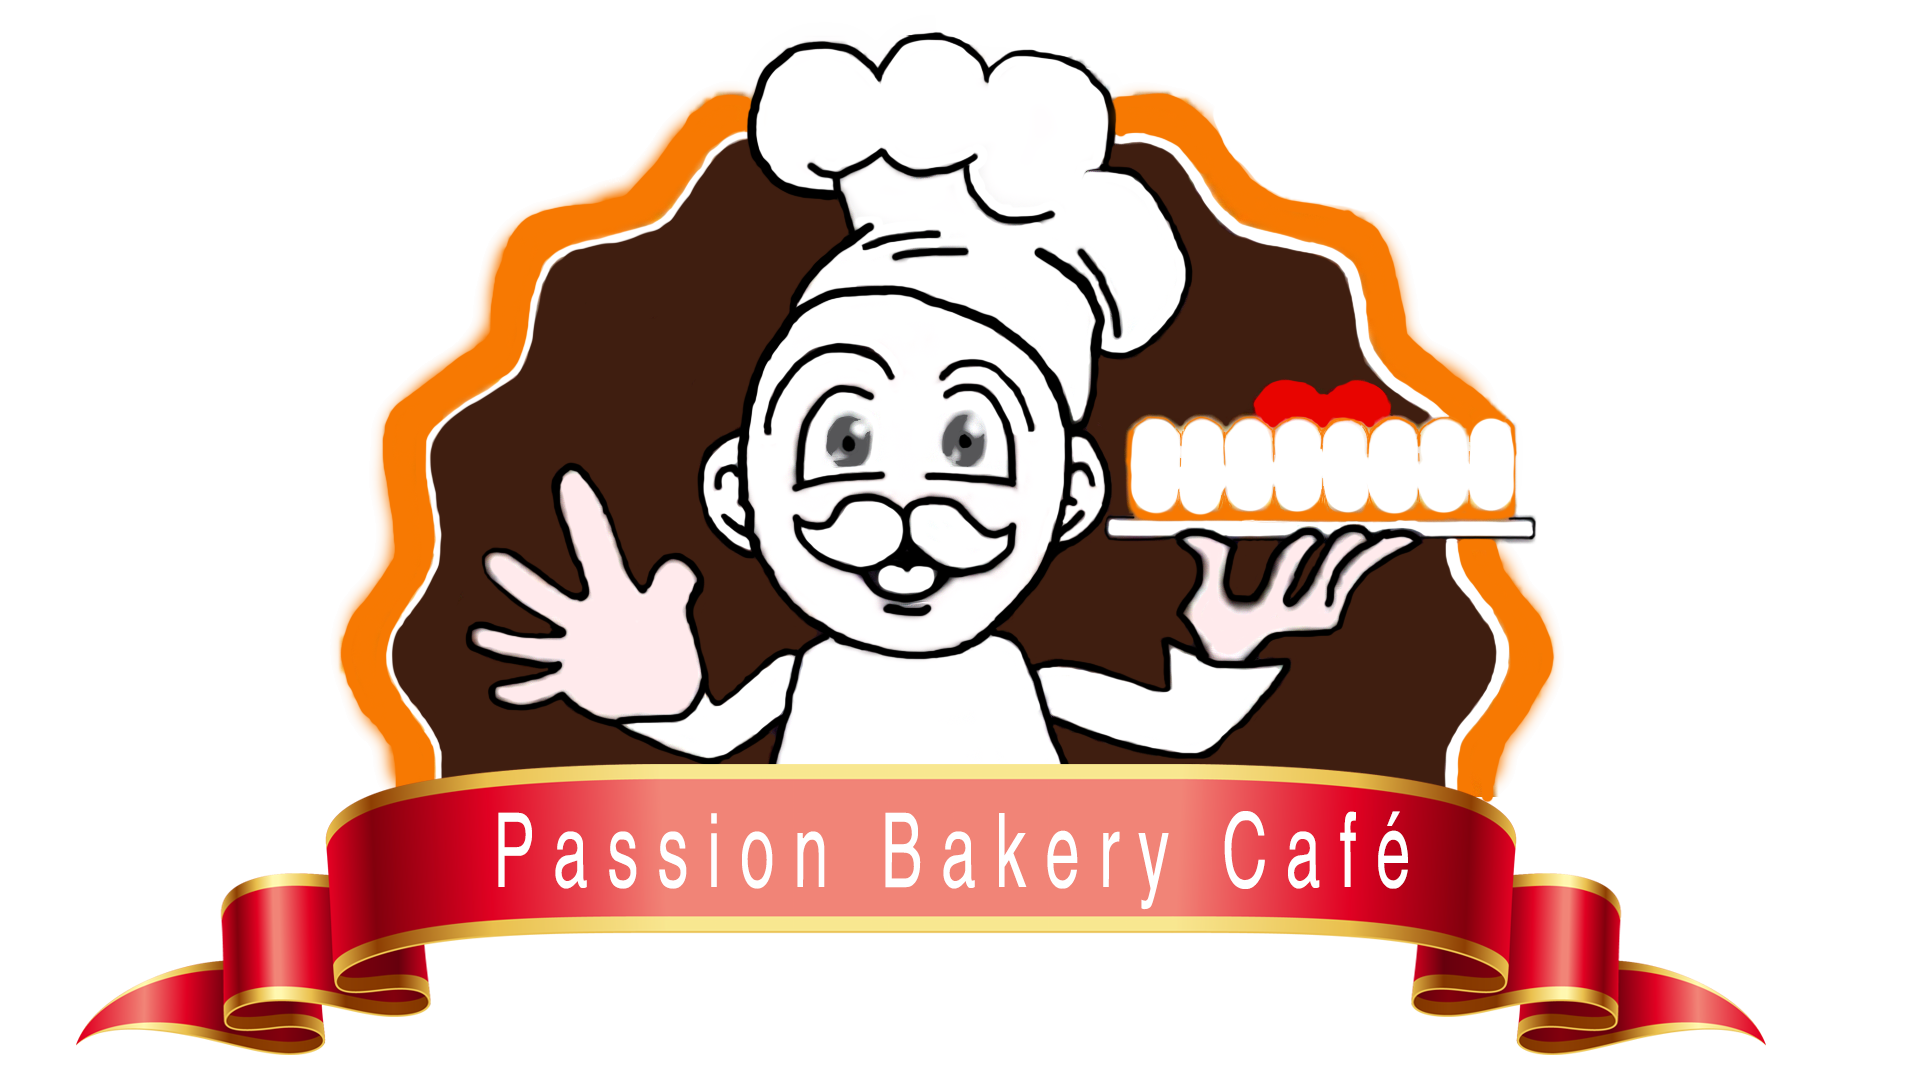 Clipart cake pastry. Passion bakery cafe home